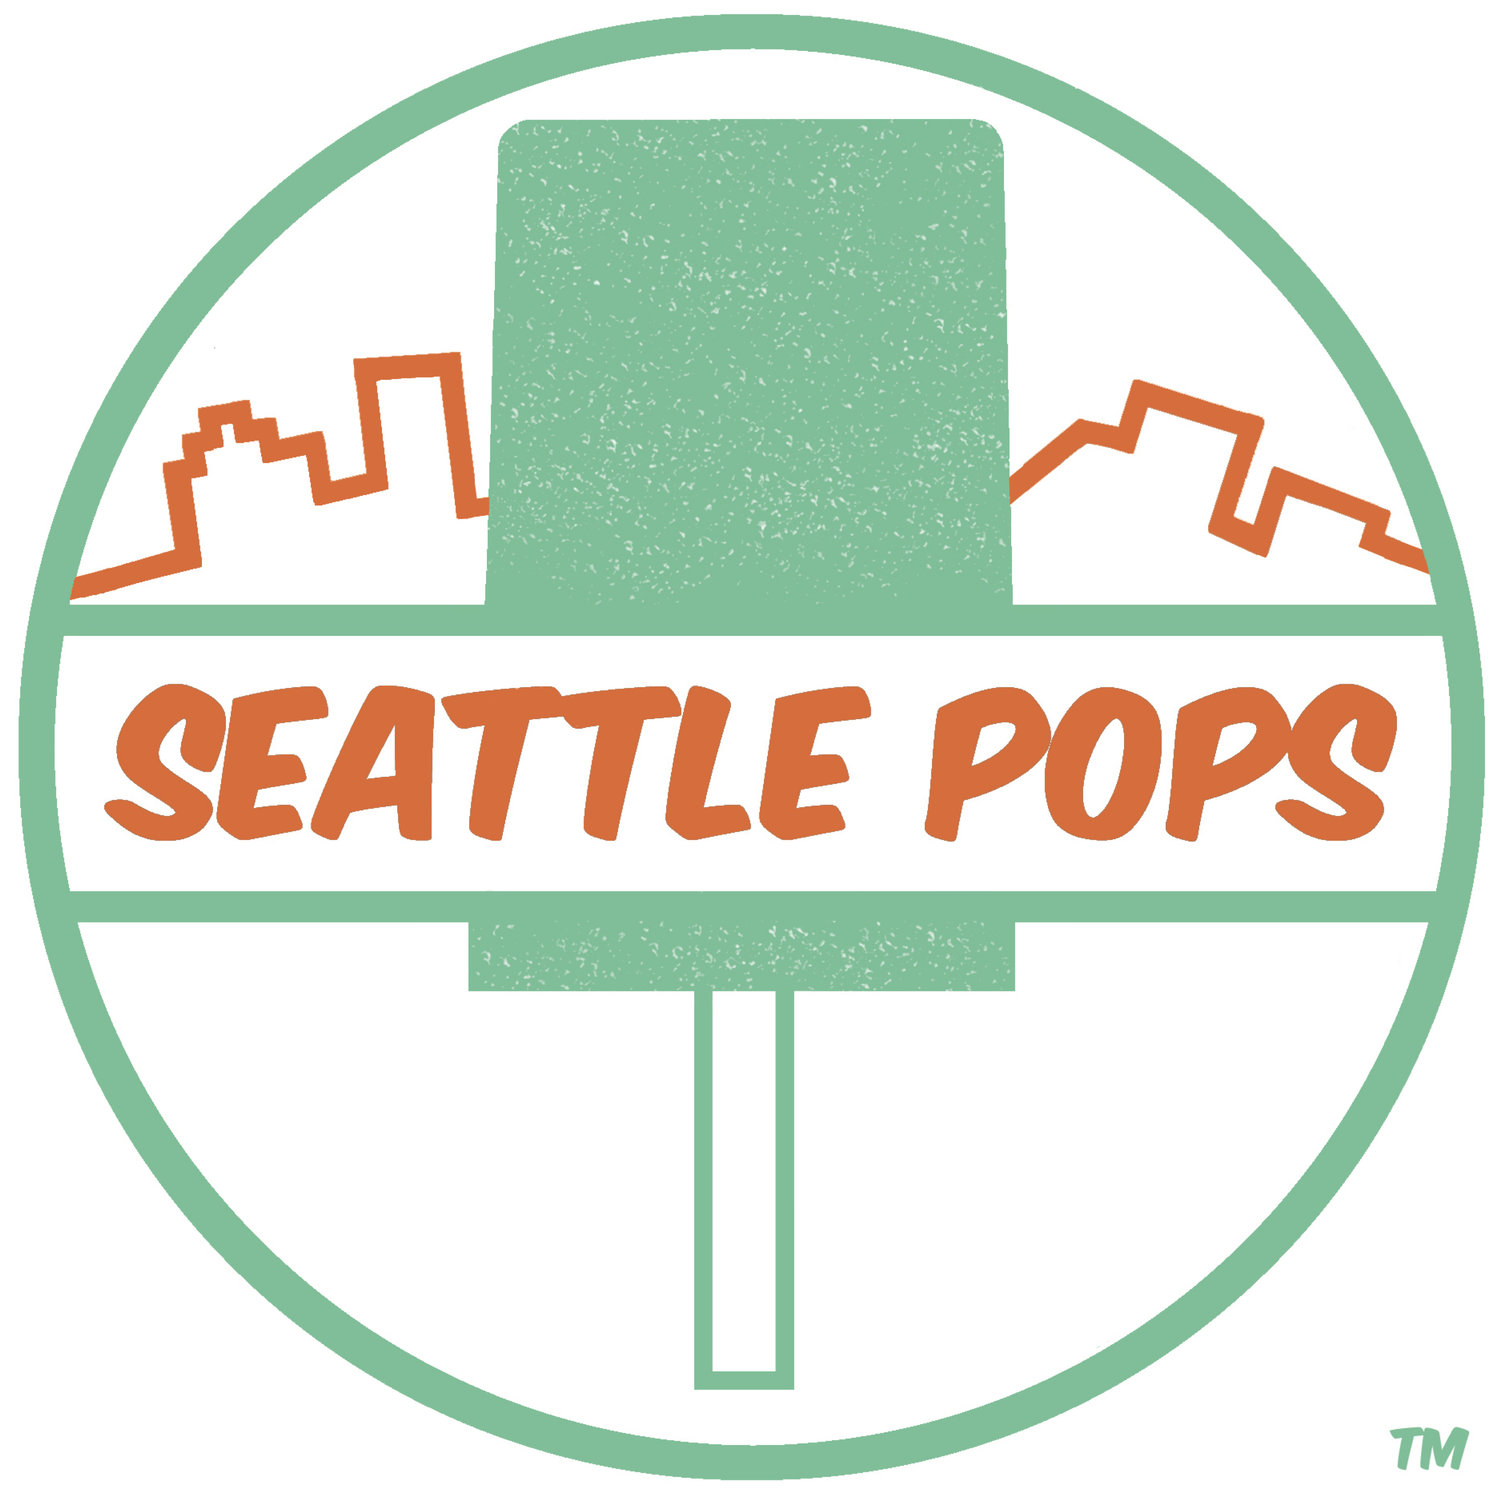 Seattle Pops